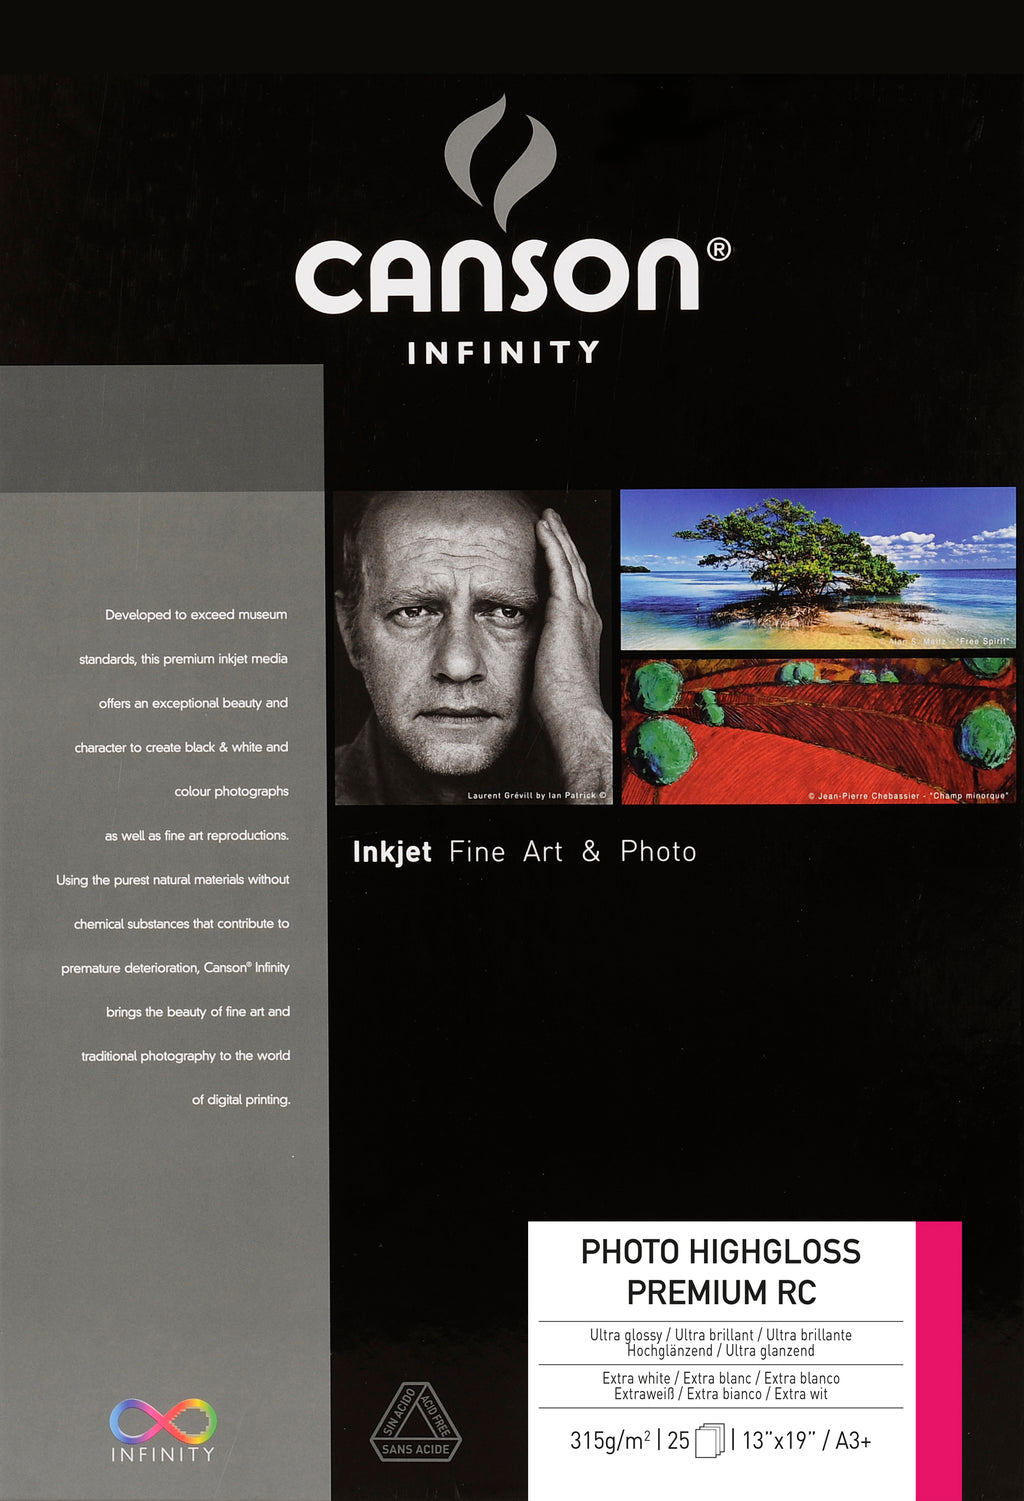 Canson Infinity Photo High Gloss Premium RC - 315gsm - A3+ - 25 sheets - Wall Your Photos